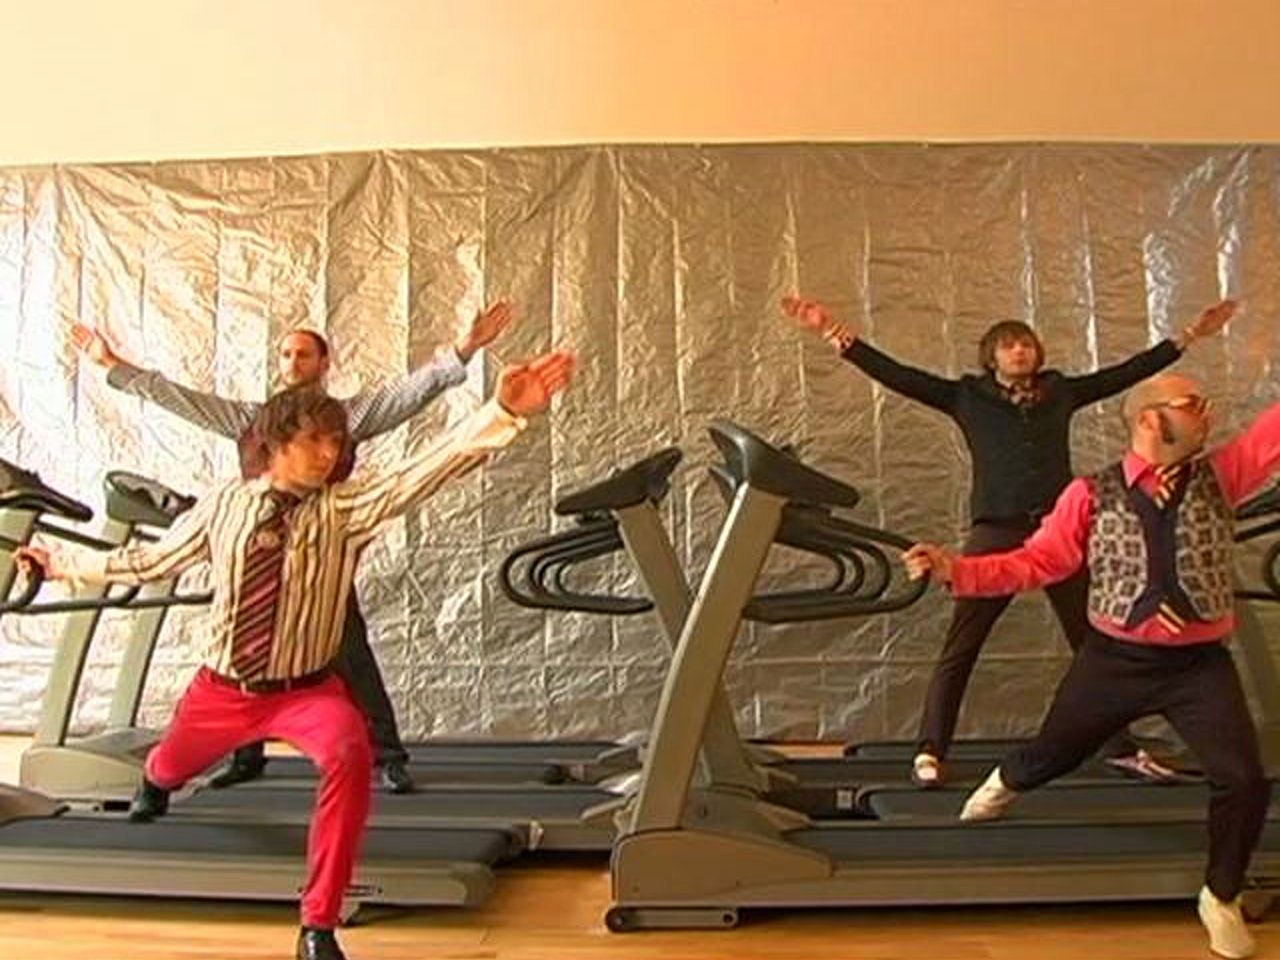 Q&A: OK Go On 10 Years Of Making Viral Videos - Stereogum